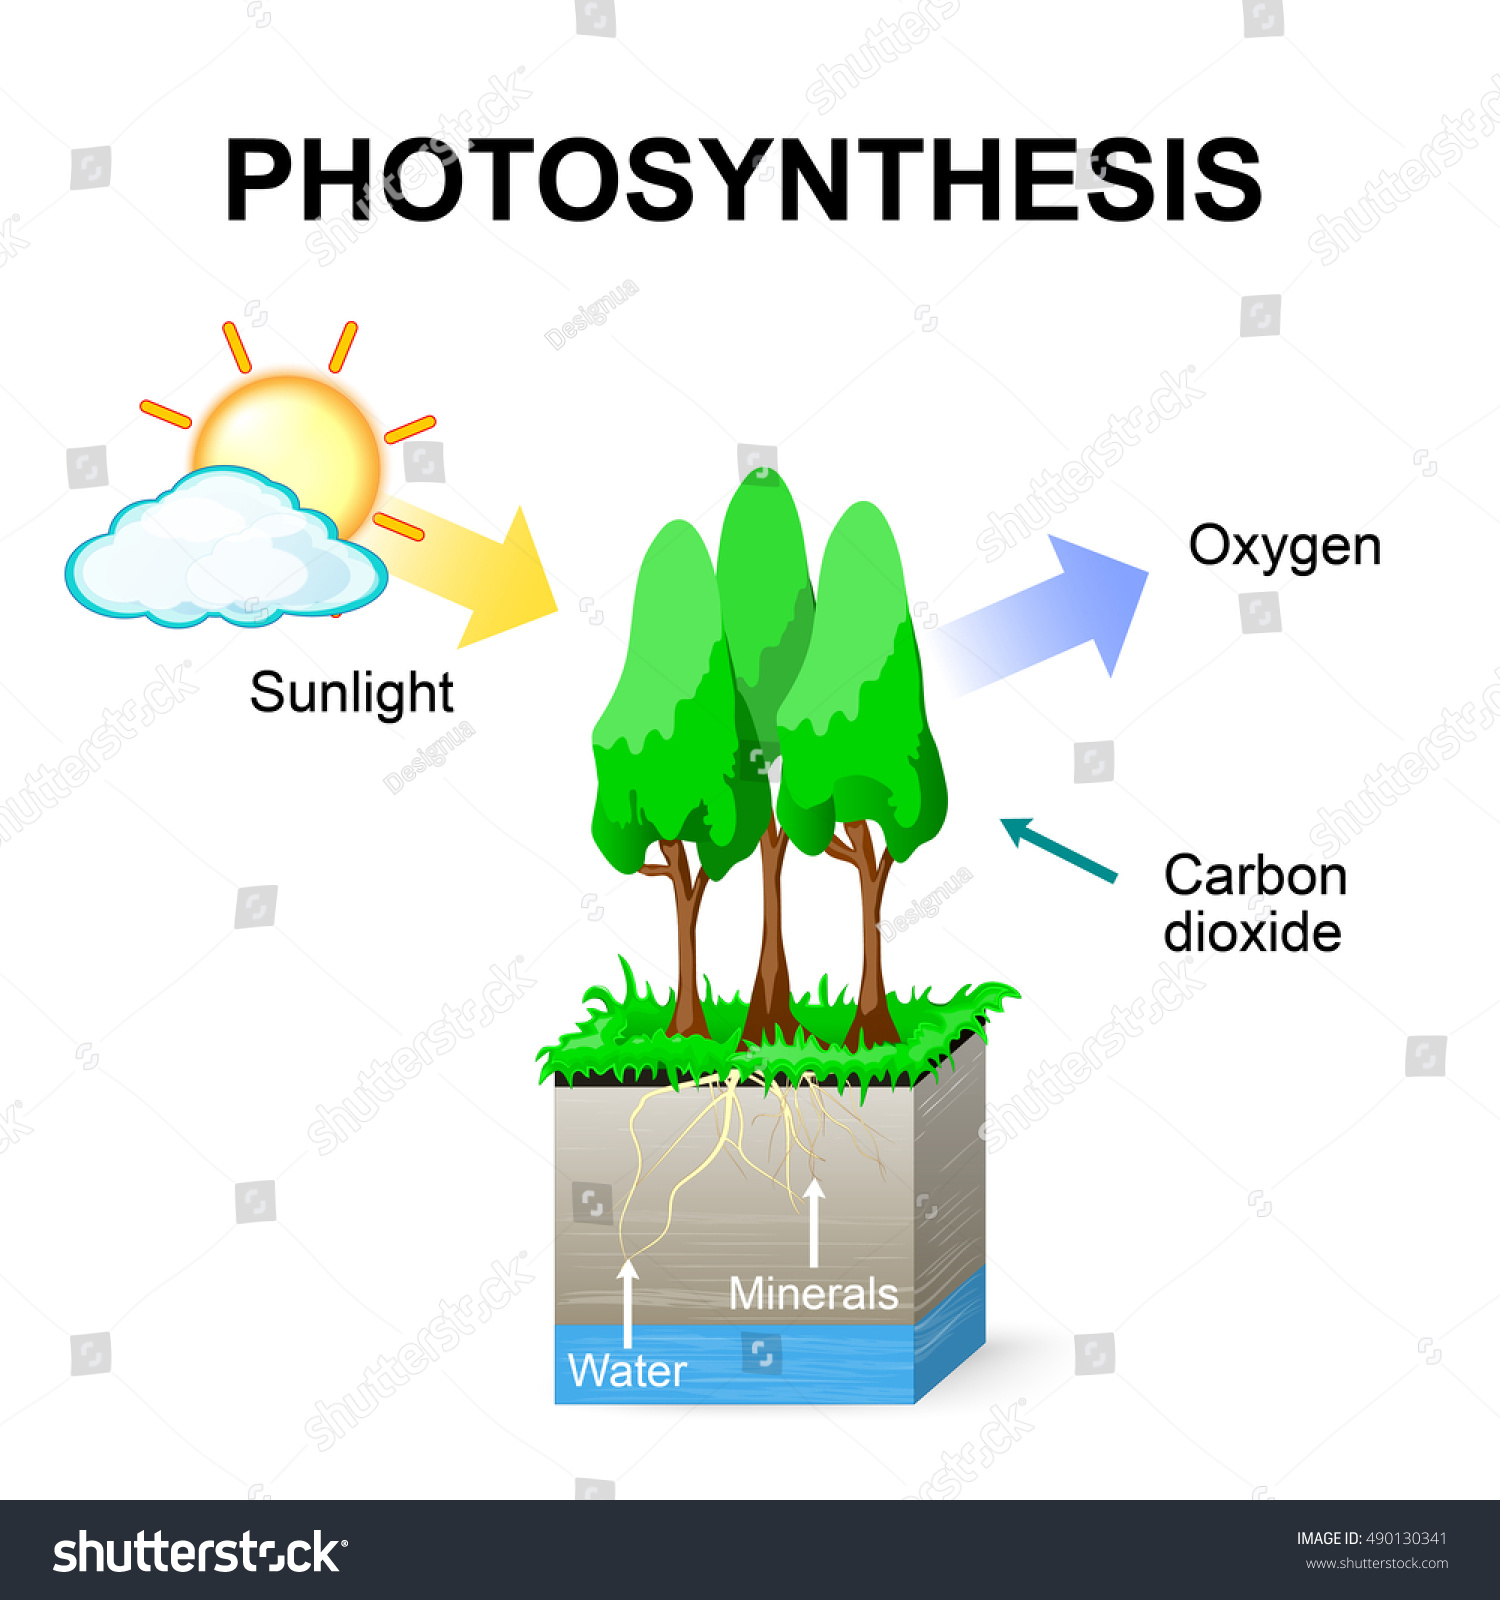 Photosynthesis Schematic of photosynthesis in plants